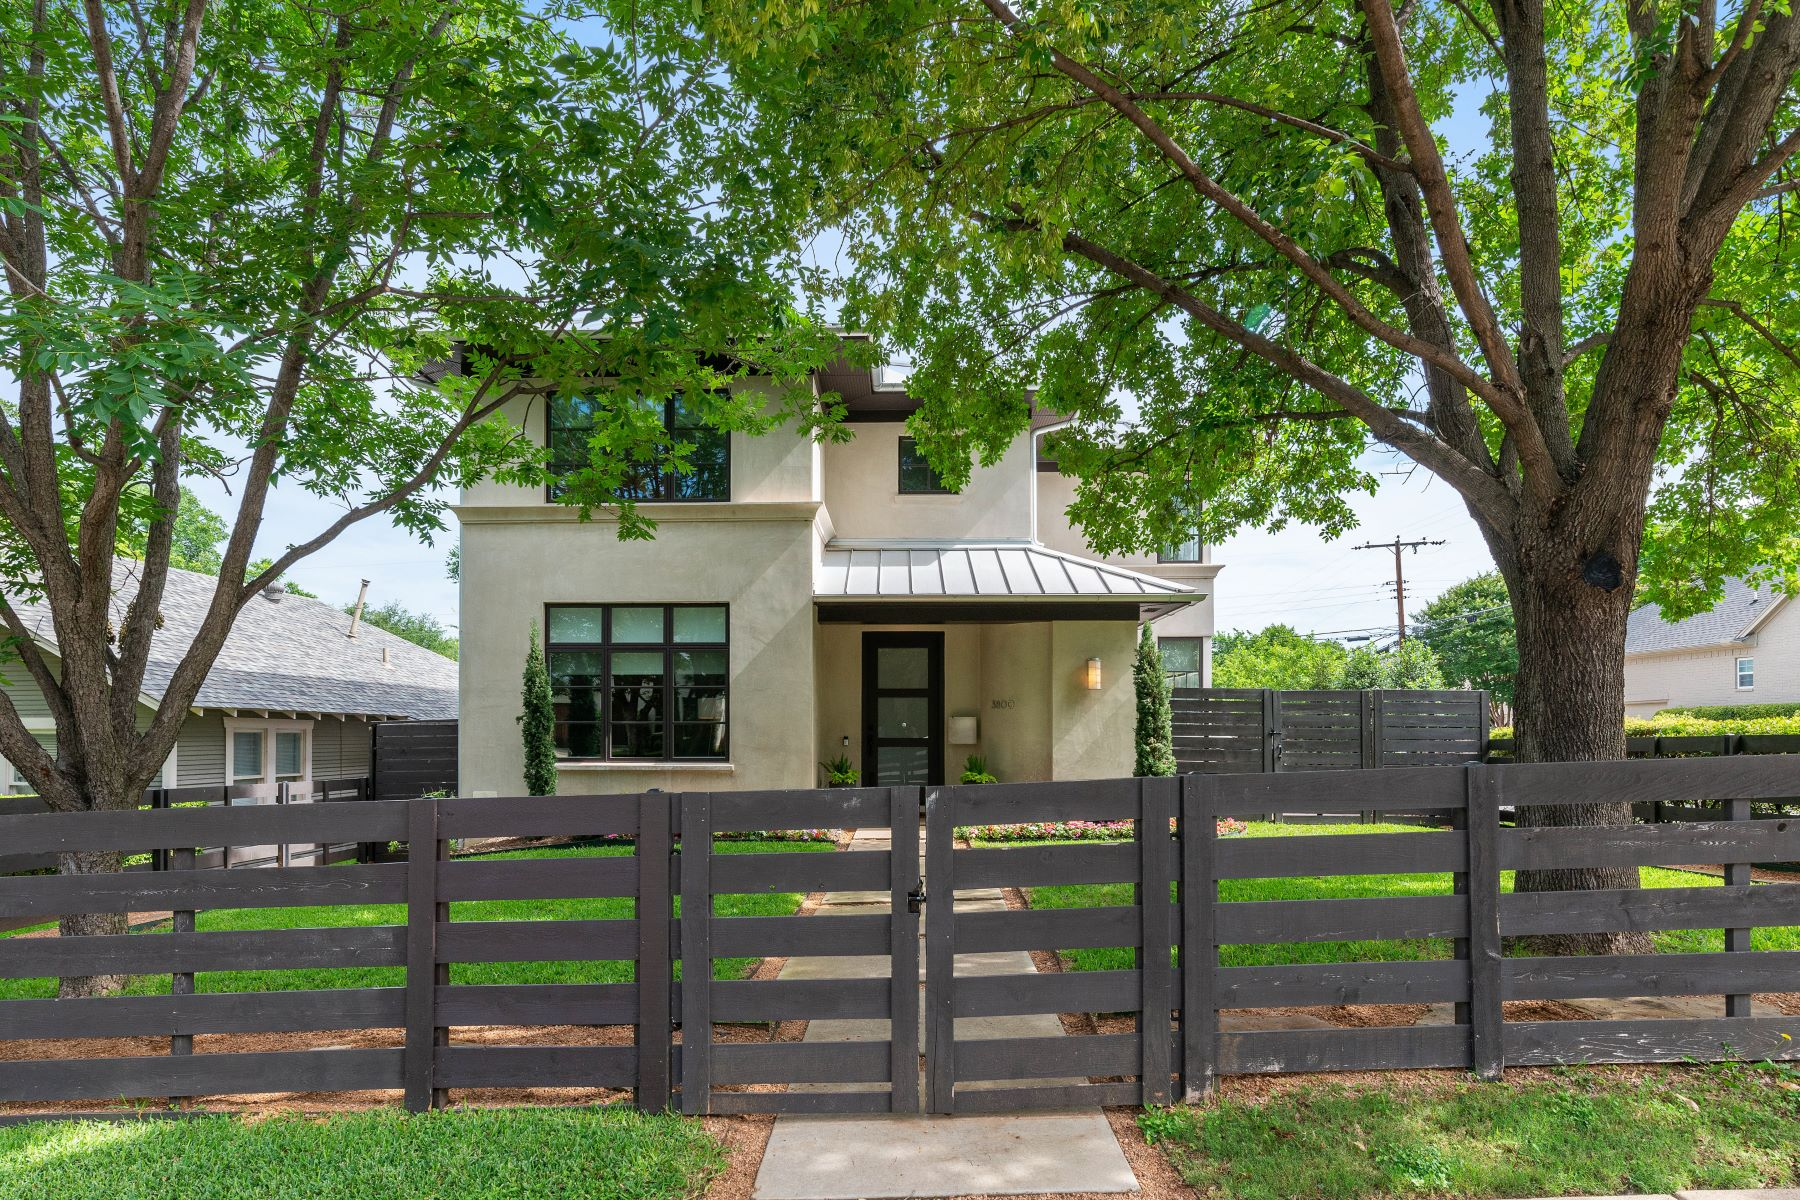 Single Family Homes for Sale at 3800 5th Street, Fort Worth, TX, 76107 3800 5th Street Fort Worth, Texas 76107 United States